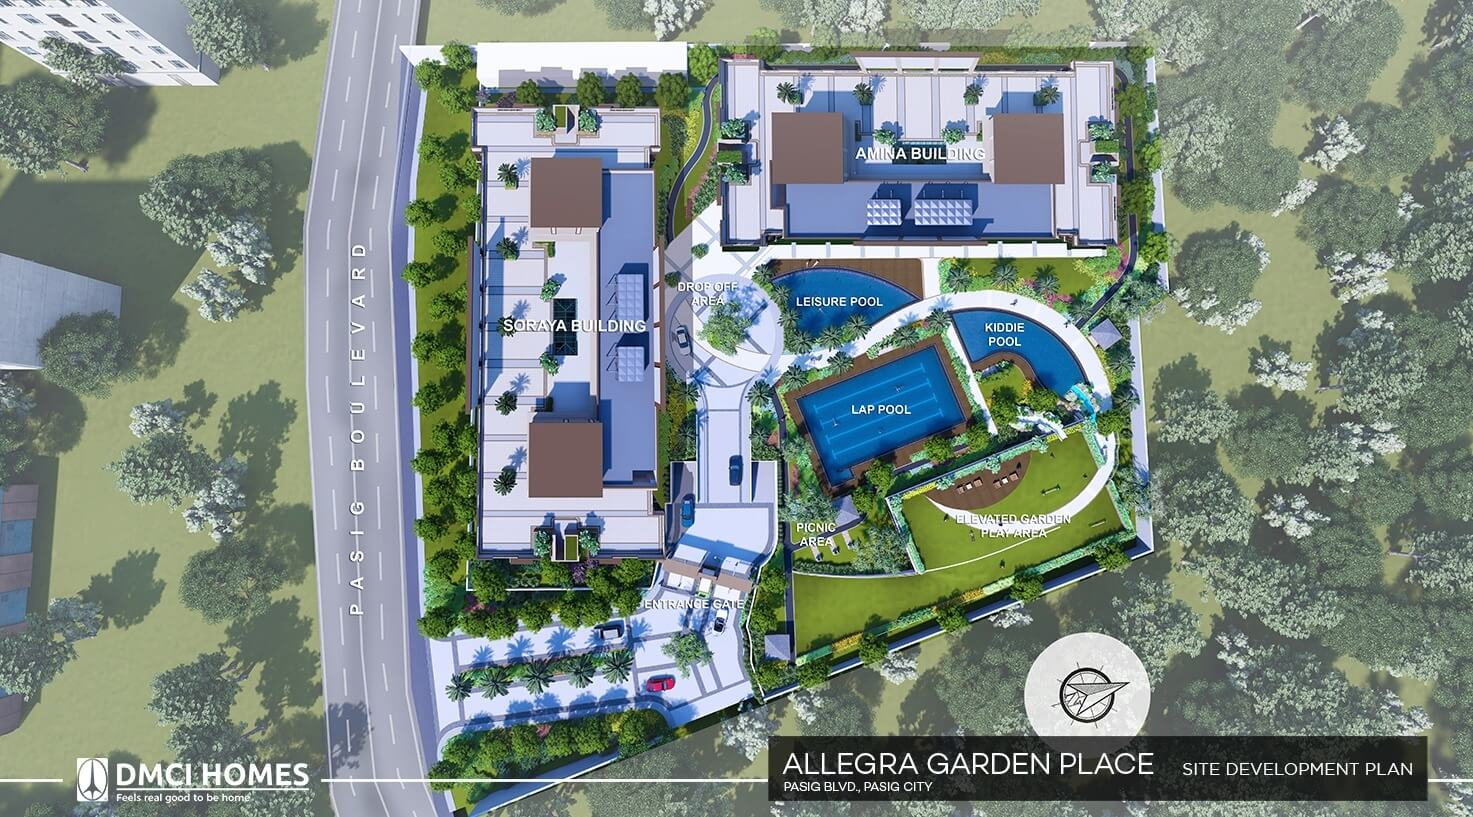 Allegra Garden Place Site Development Plan Dmci Homes Website With Virtual Tour And Live Chat Support